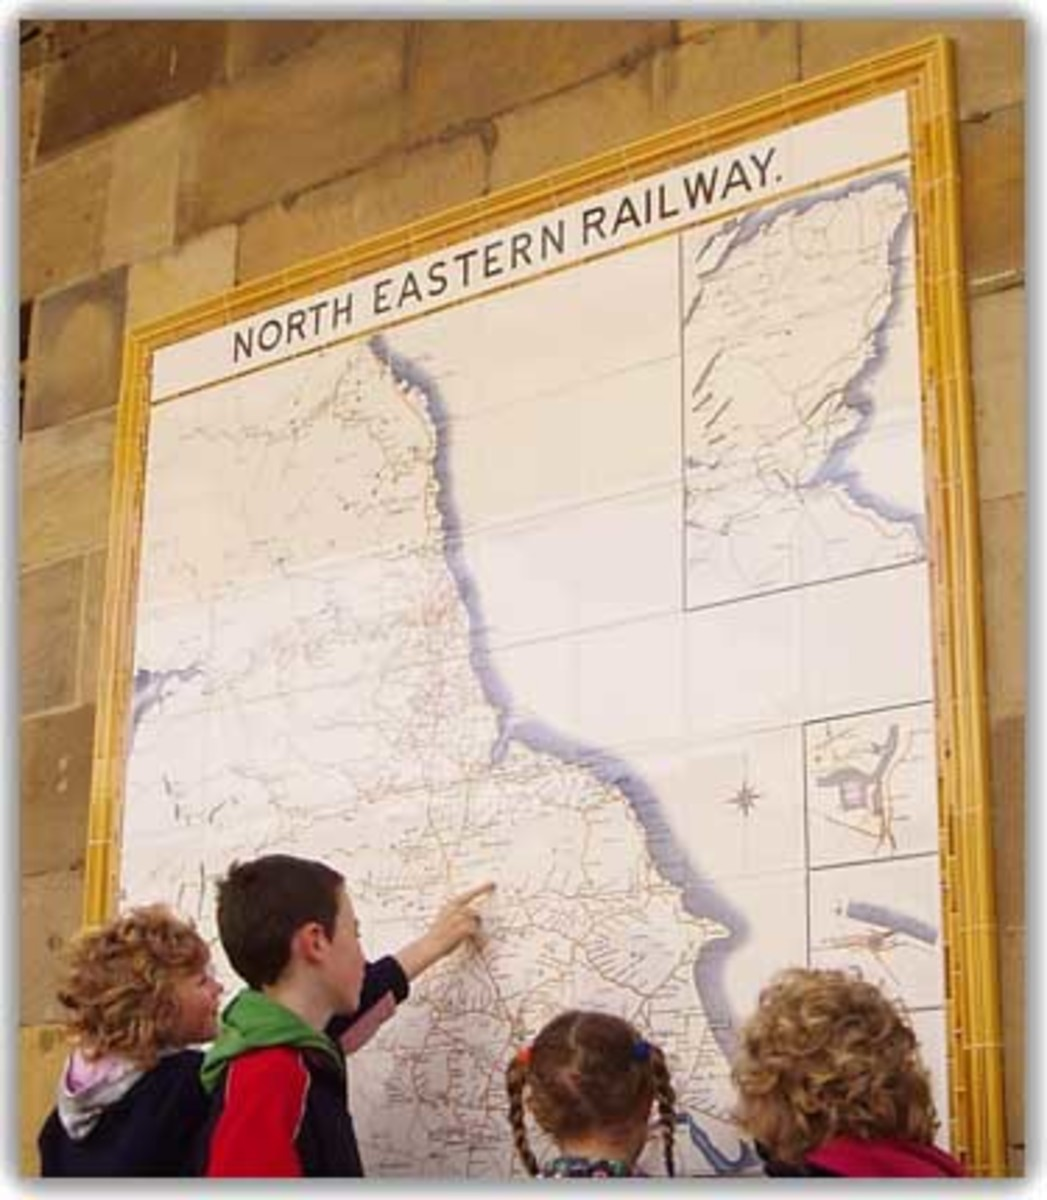 In 2009 a new tile map was added to the station wall at Pickering in the style of tile map found across the NER system at larger stations. One of a group of children points to her own local station on the western edge of the North Yorkshire Moors